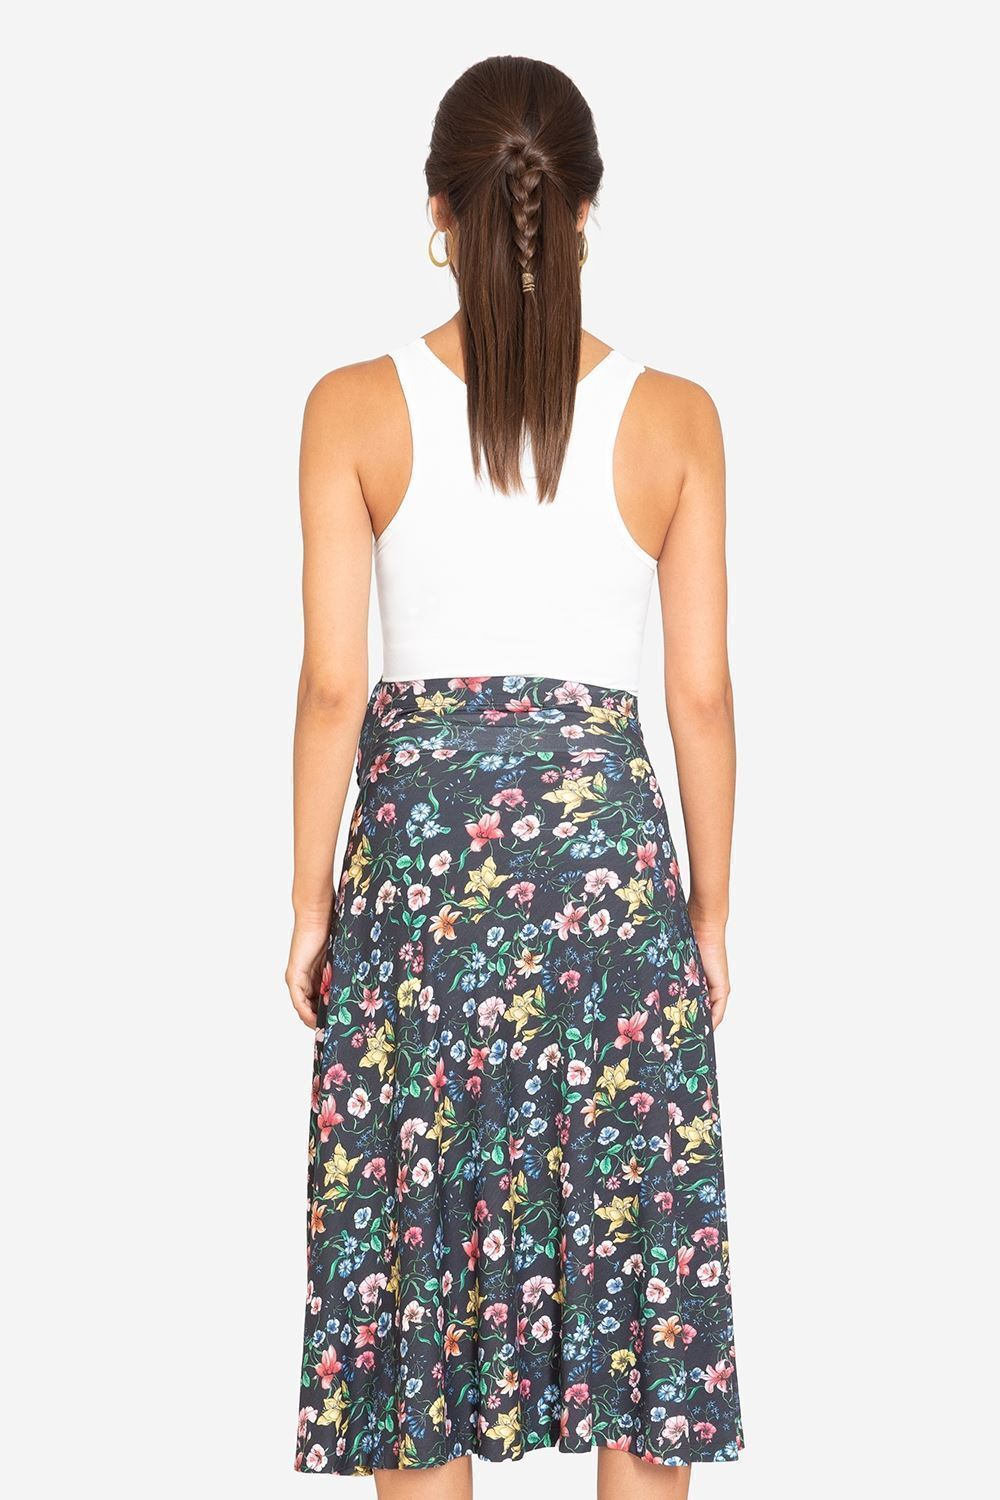 Black floral pregnancy skirt - seen from back